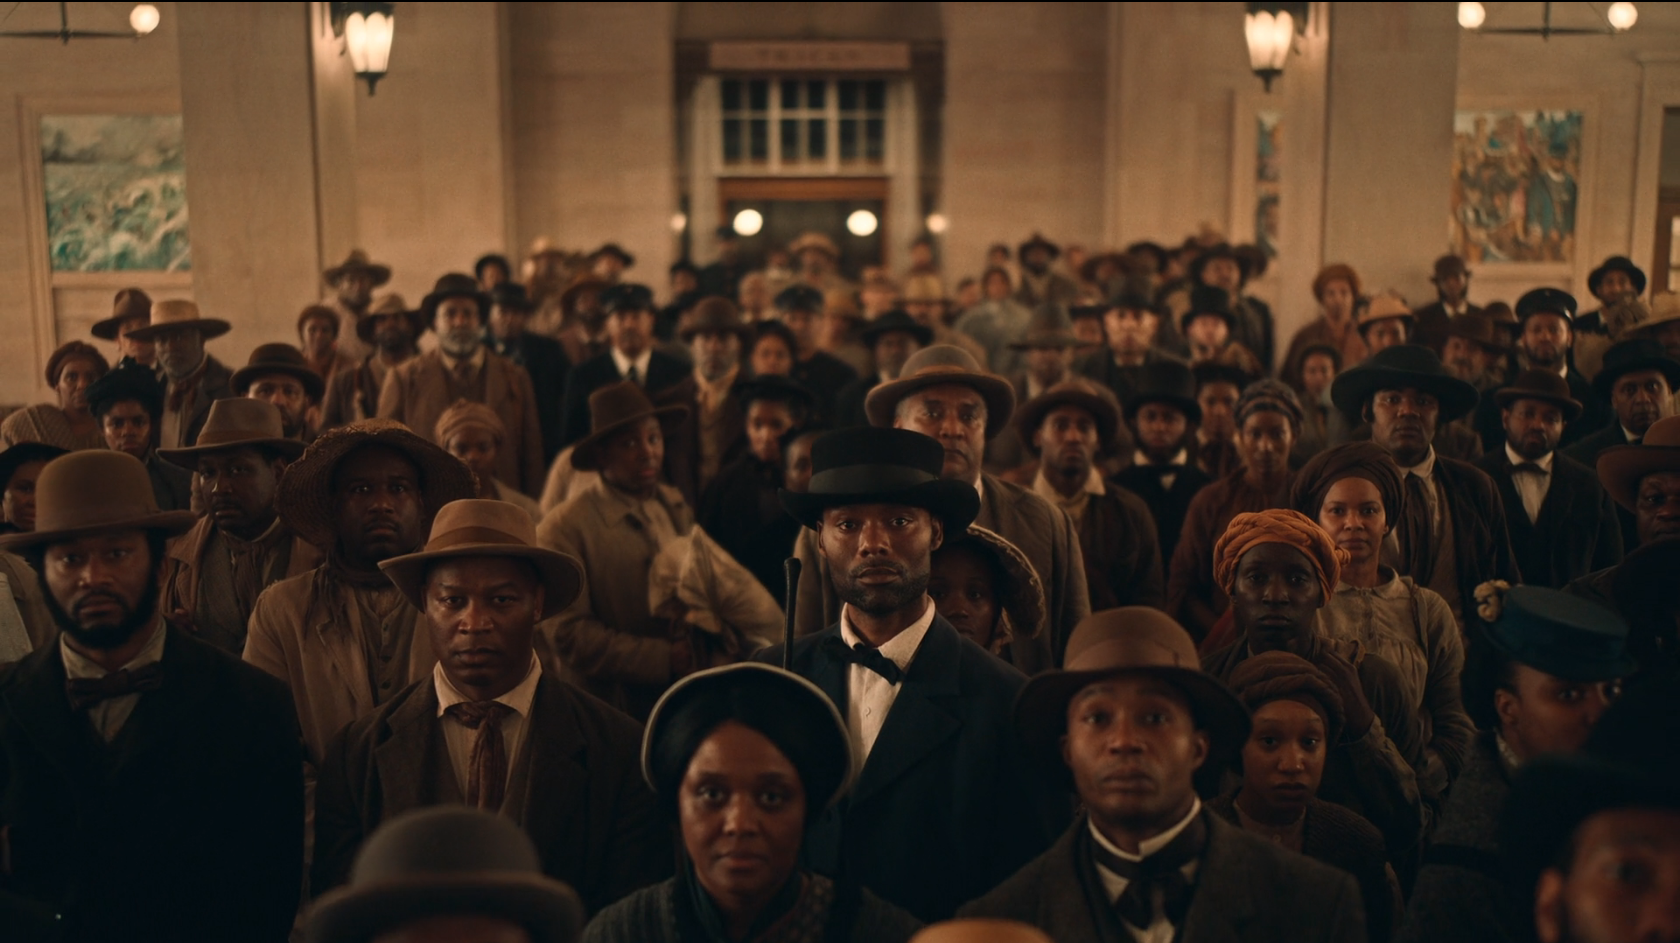 Amazon have released the official trailer for the upcoming limited series from Barry Jenkins, The Underground Railroad, based on Colson Whitehead's bestselling novel.